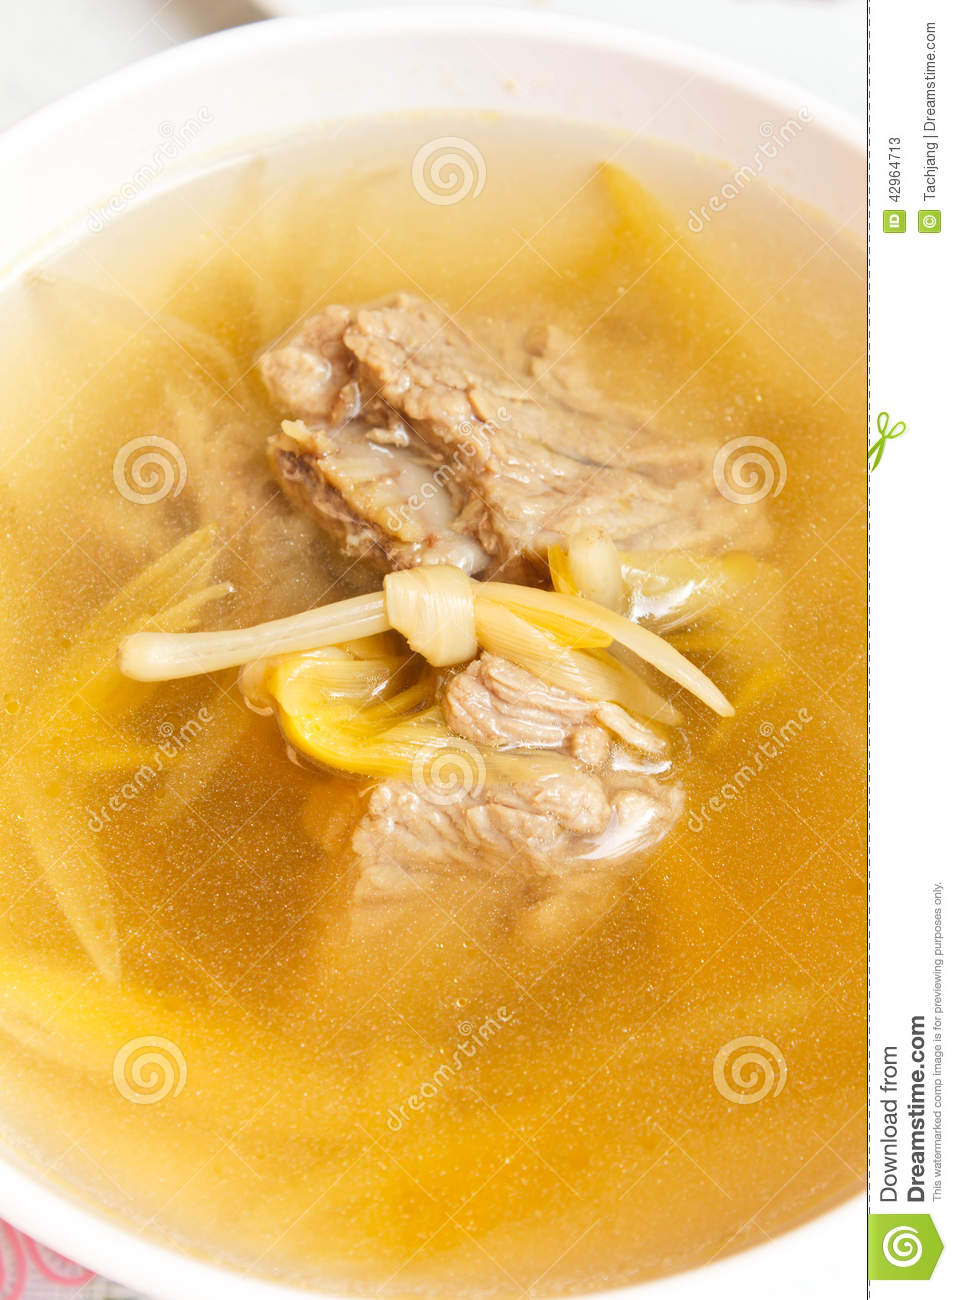 Lily flower and sparerib soup stock image image of style dinner download lily flower and sparerib soup stock image image of style dinner izmirmasajfo